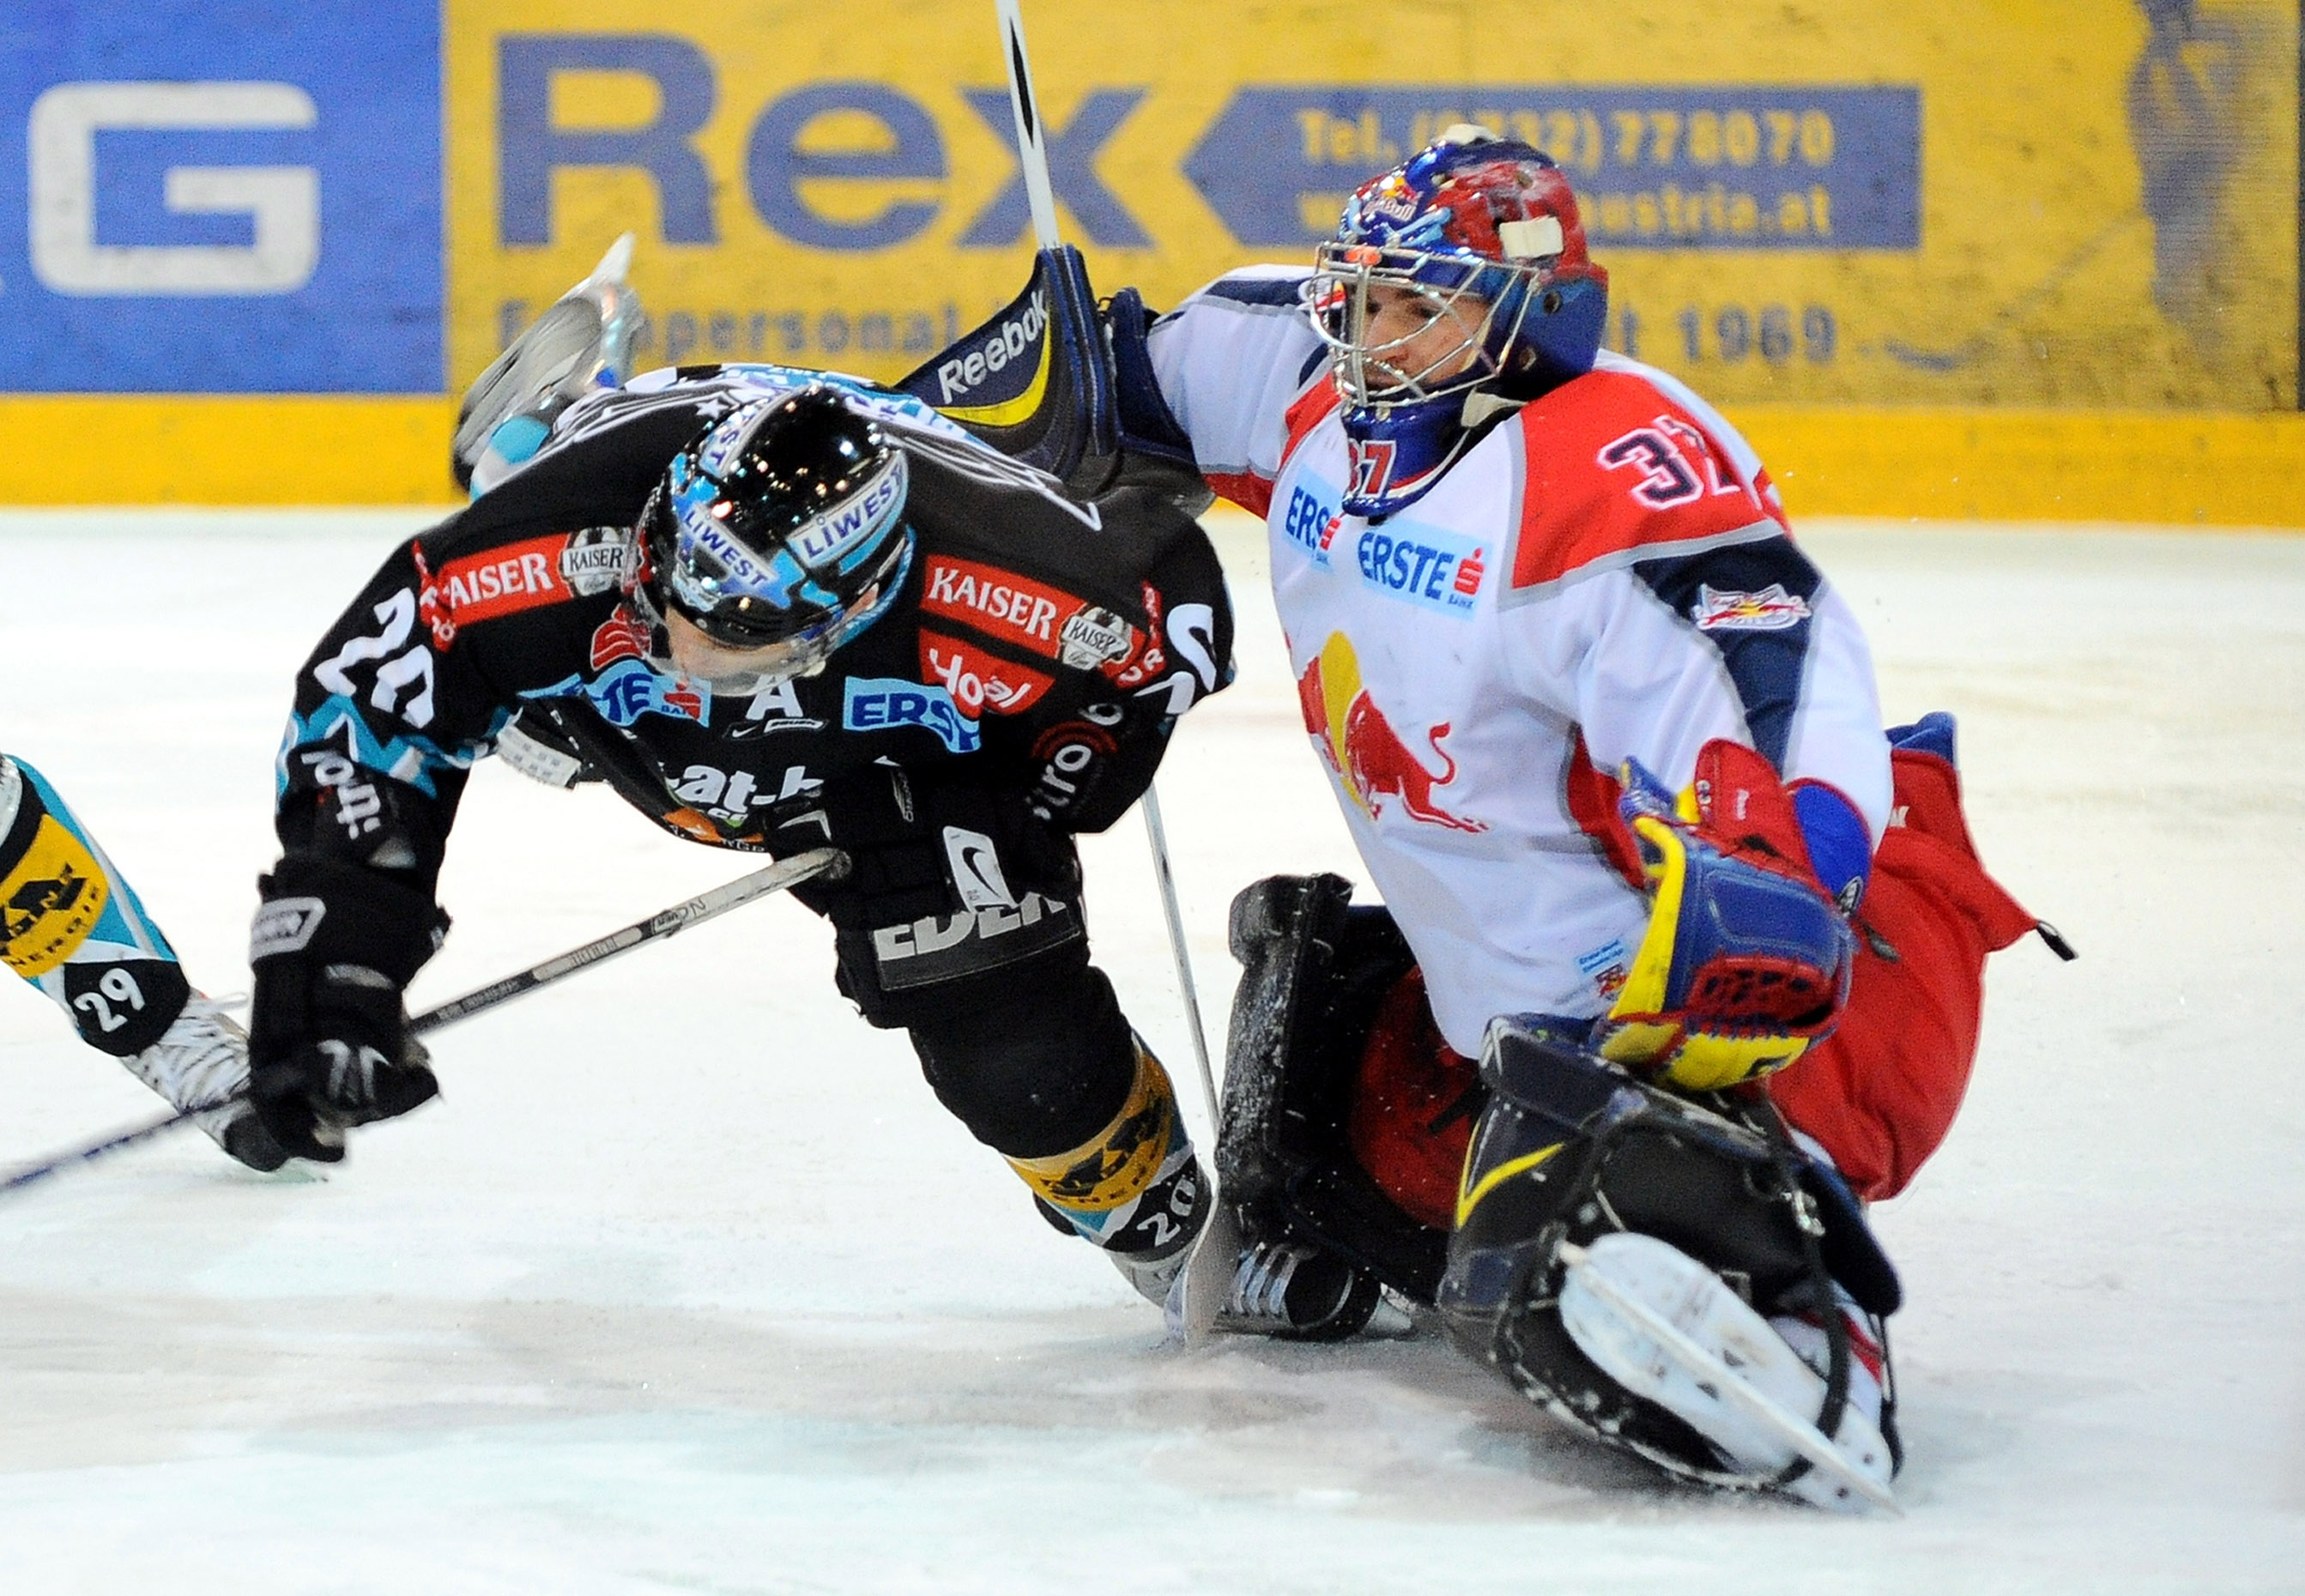 ICE HOCKEY – EBEL, Black Wings vs EC RBS